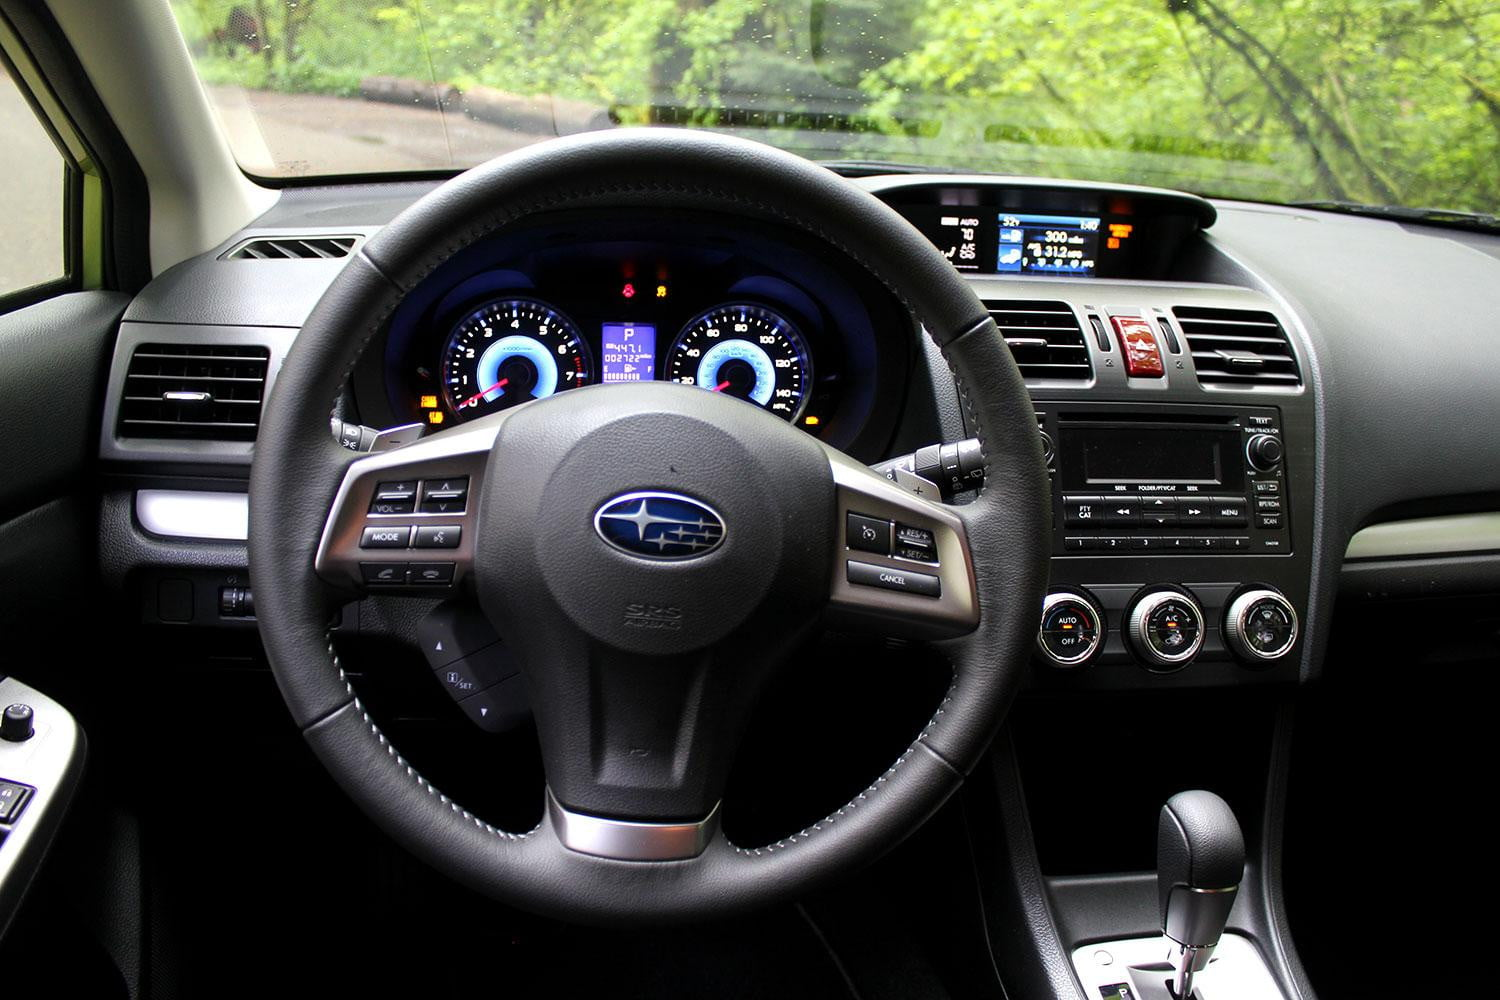 2014 subaru xv crosstek hybrid review digital trends. Black Bedroom Furniture Sets. Home Design Ideas